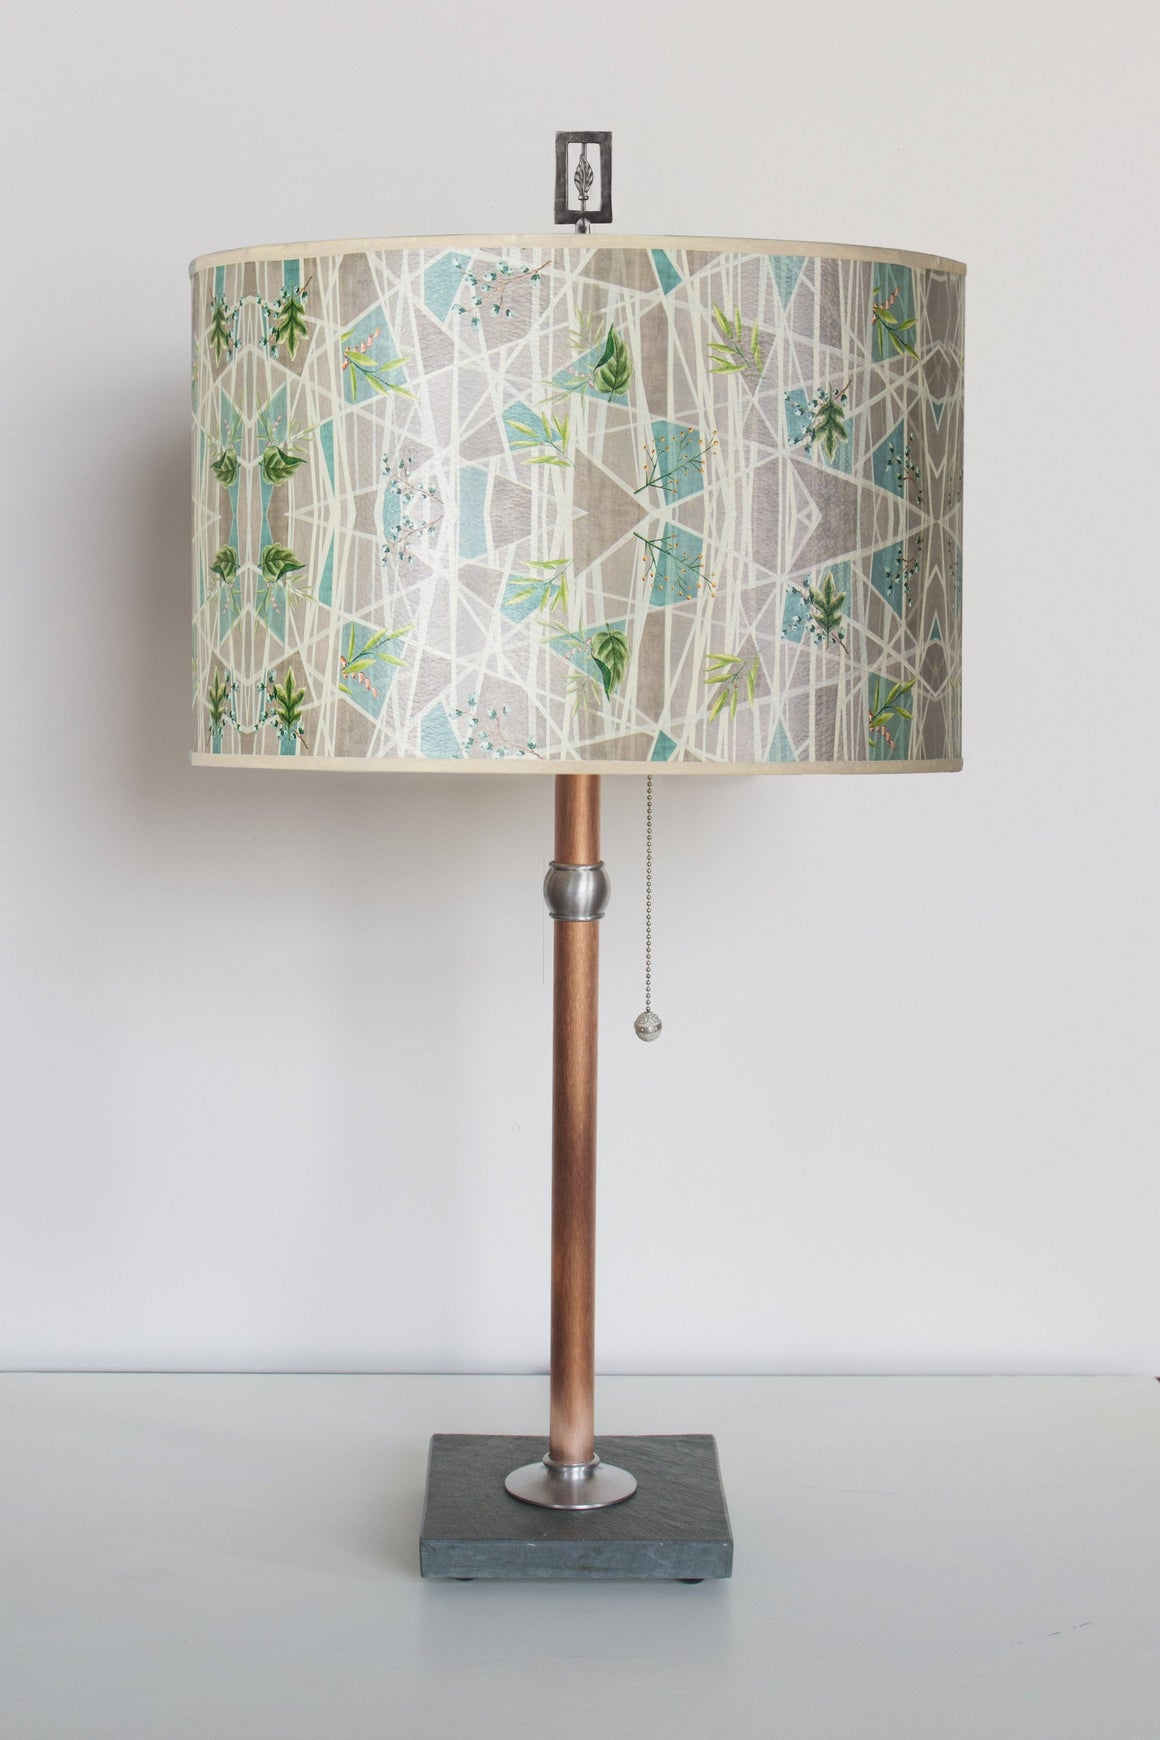 Copper Table Lamp with Large Drum Shade in Prism